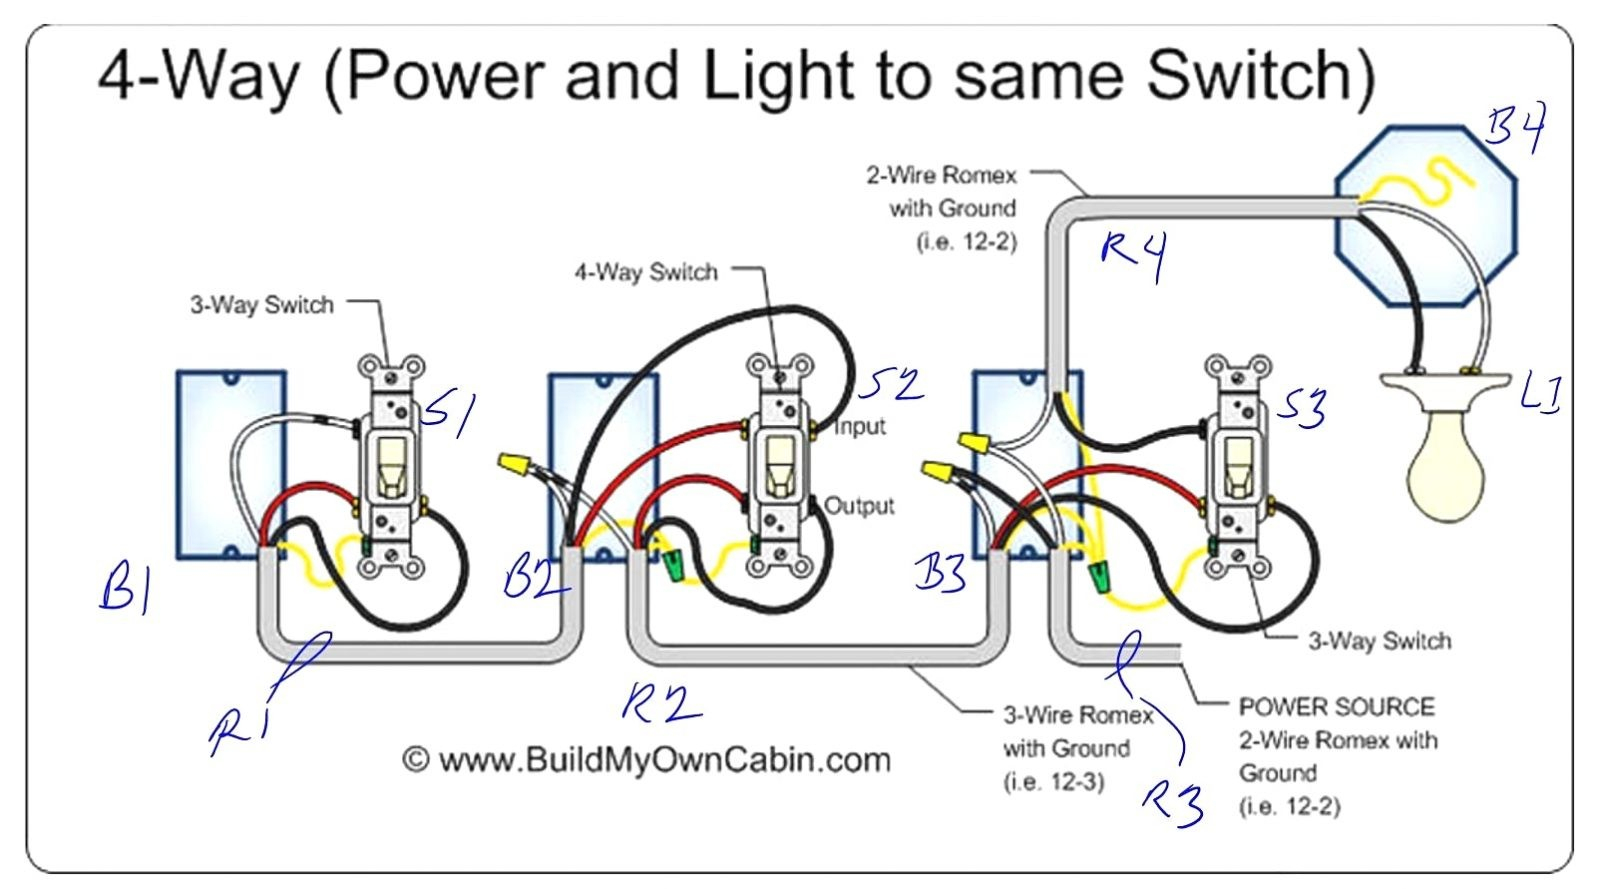 Lutron Caseta Wiring Diagrams | Wiring Diagram - Lutron 3 Way Dimmer Switch Wiring Diagram